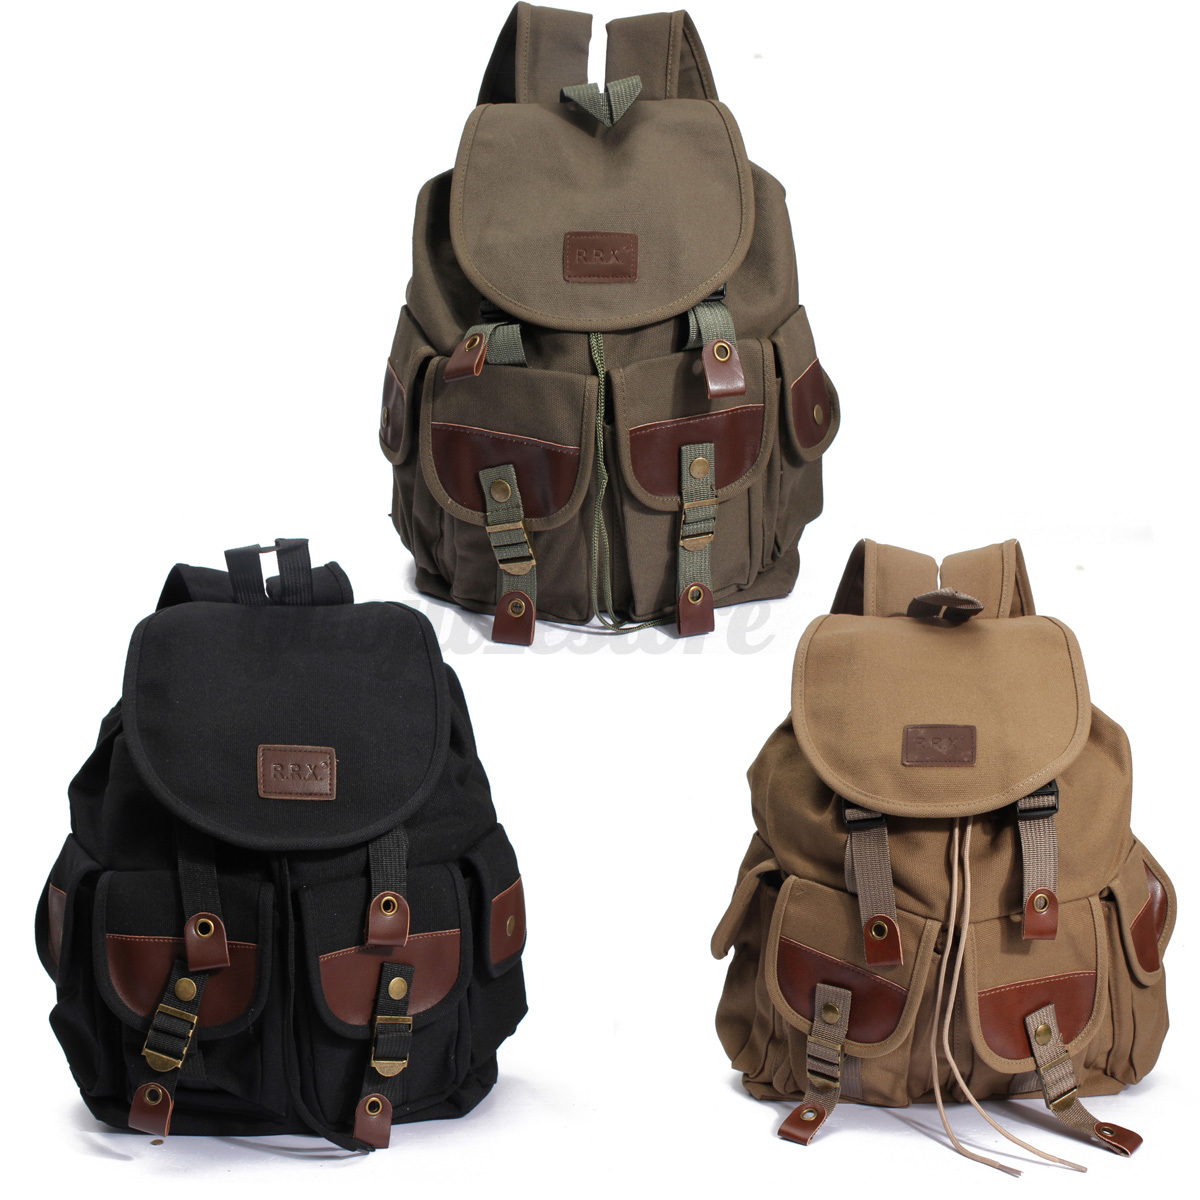 rucksack canvas leder schulranze sporttasche schule wandern milit r damen herren ebay. Black Bedroom Furniture Sets. Home Design Ideas